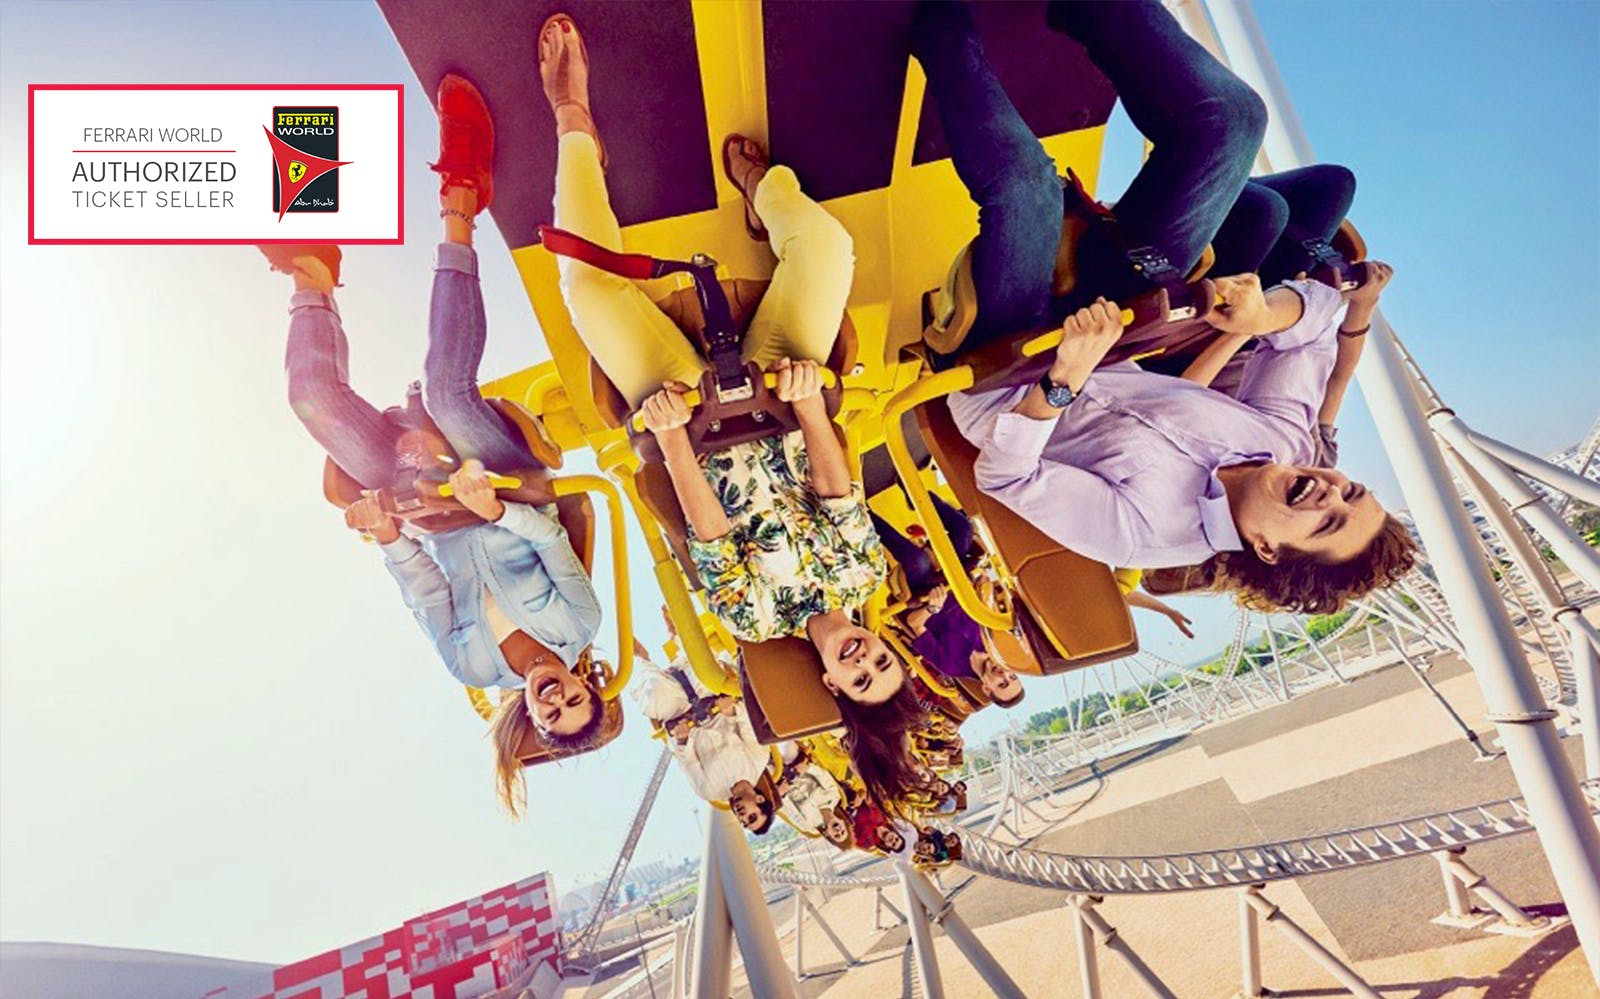 ferrari world tickets with all ride quick pass-1